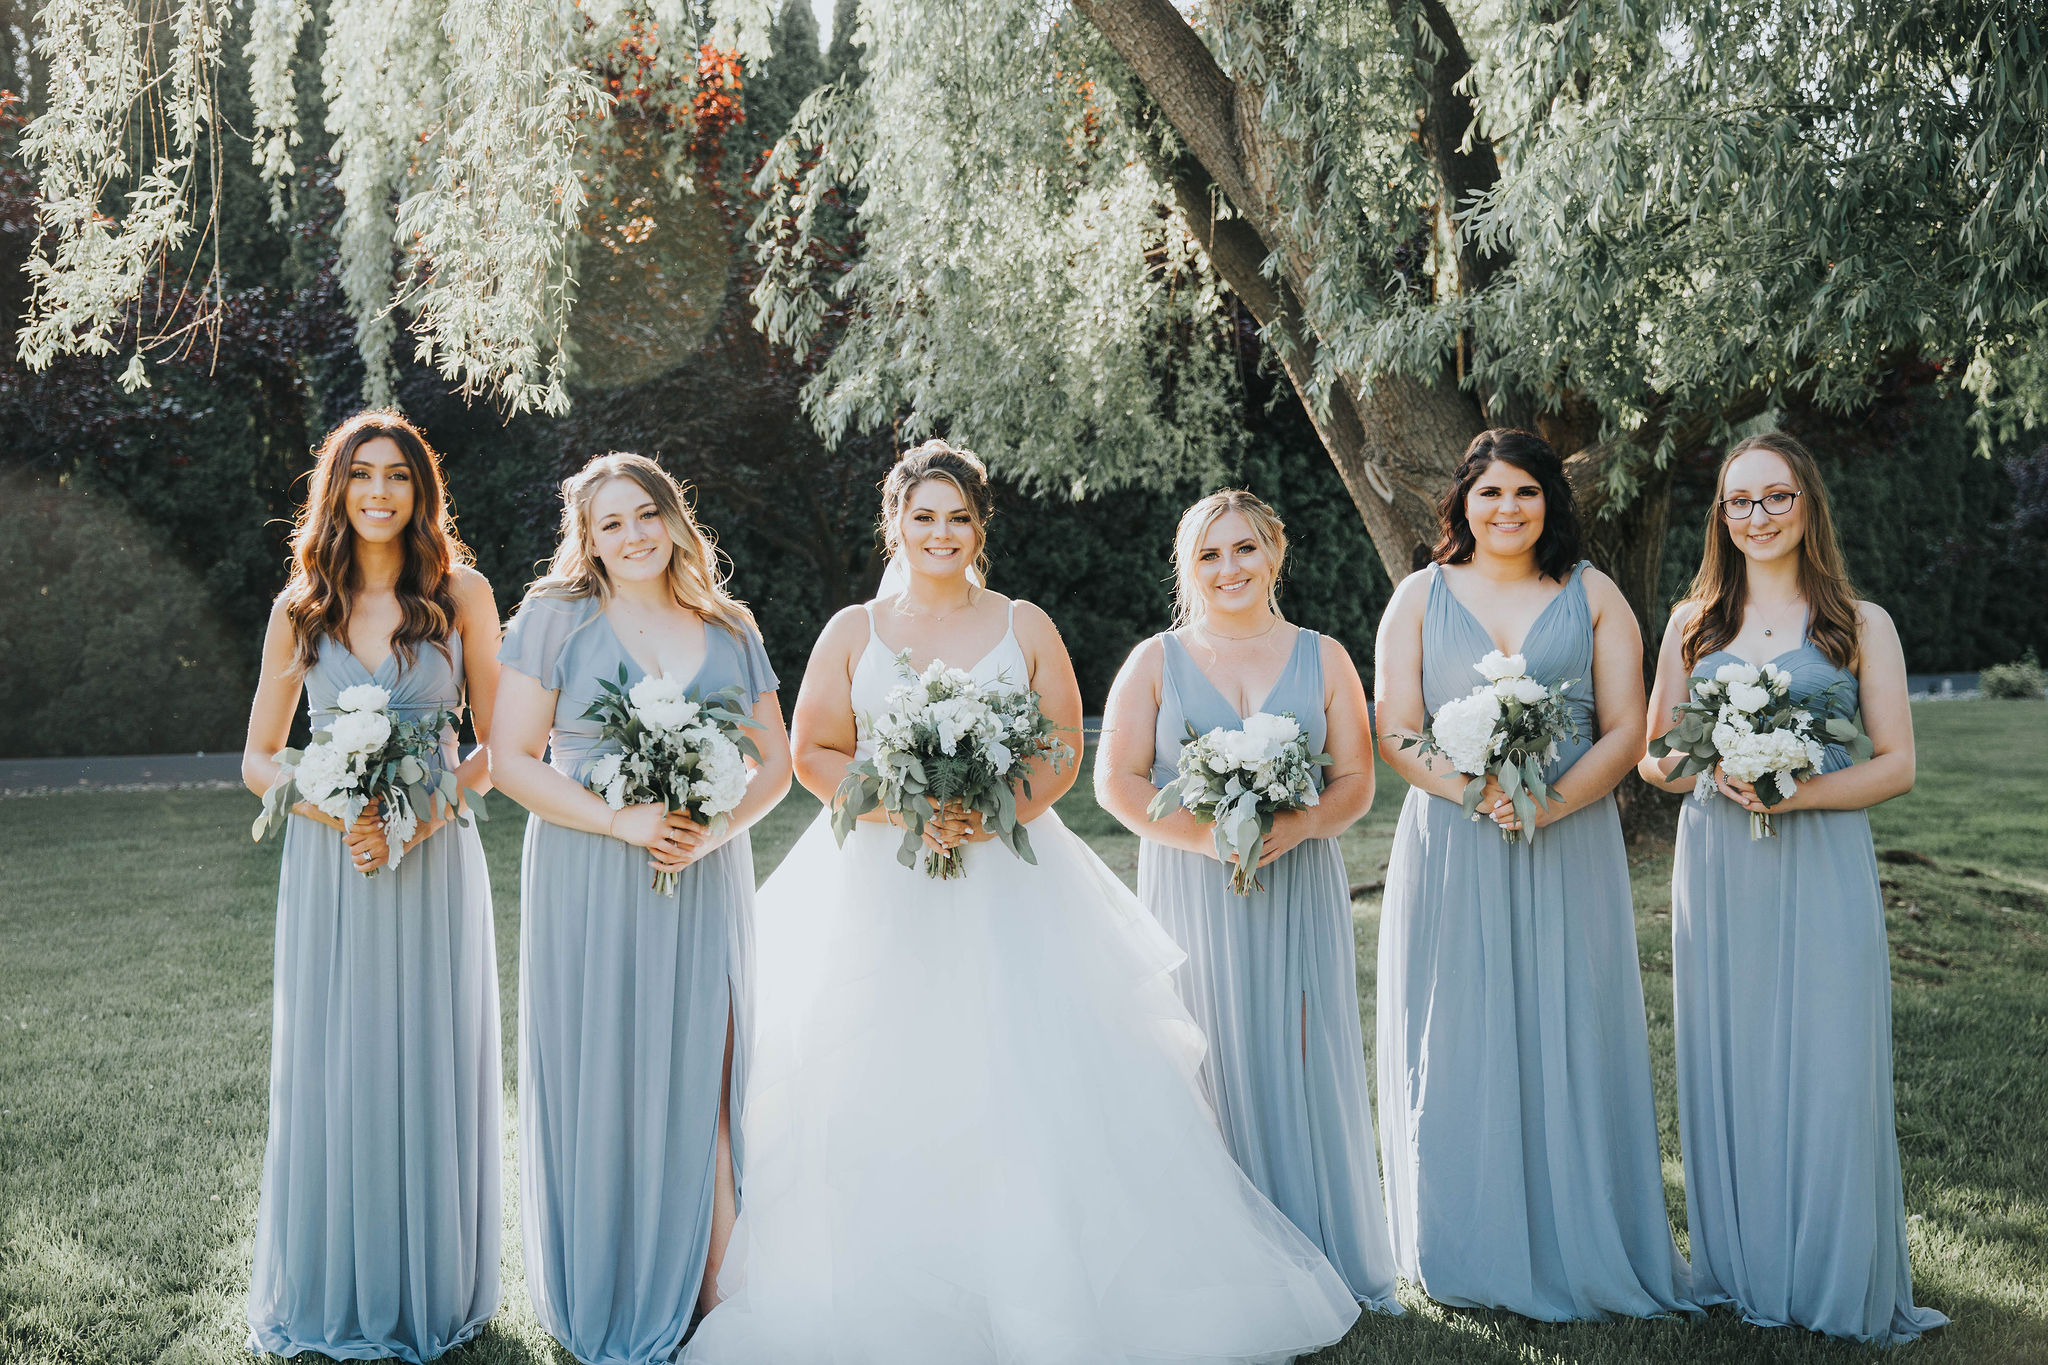 bridesmaids spokane wedding happy bridal party